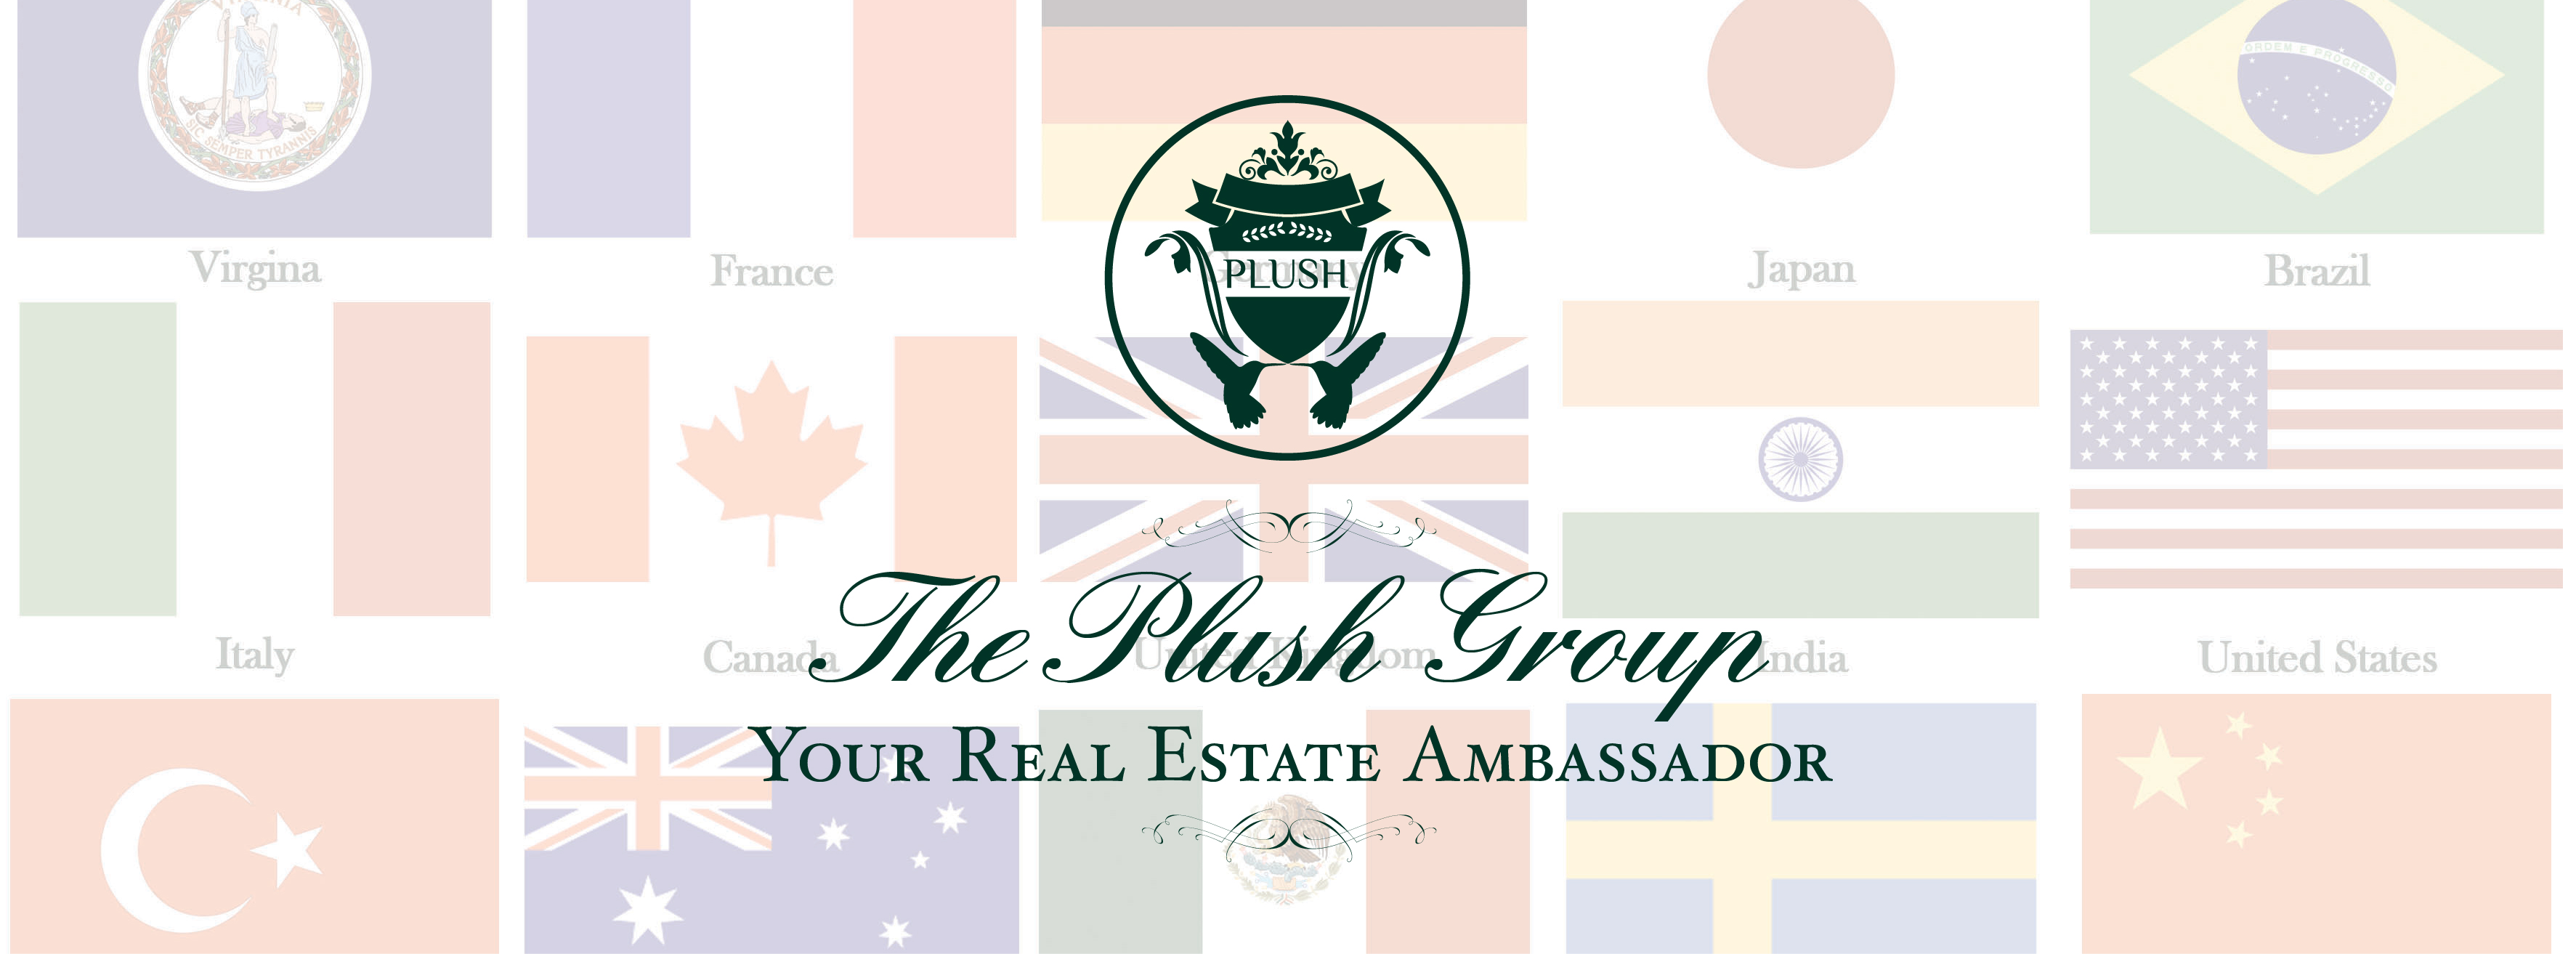 The Plush Group Brokered by eXp Realty logo